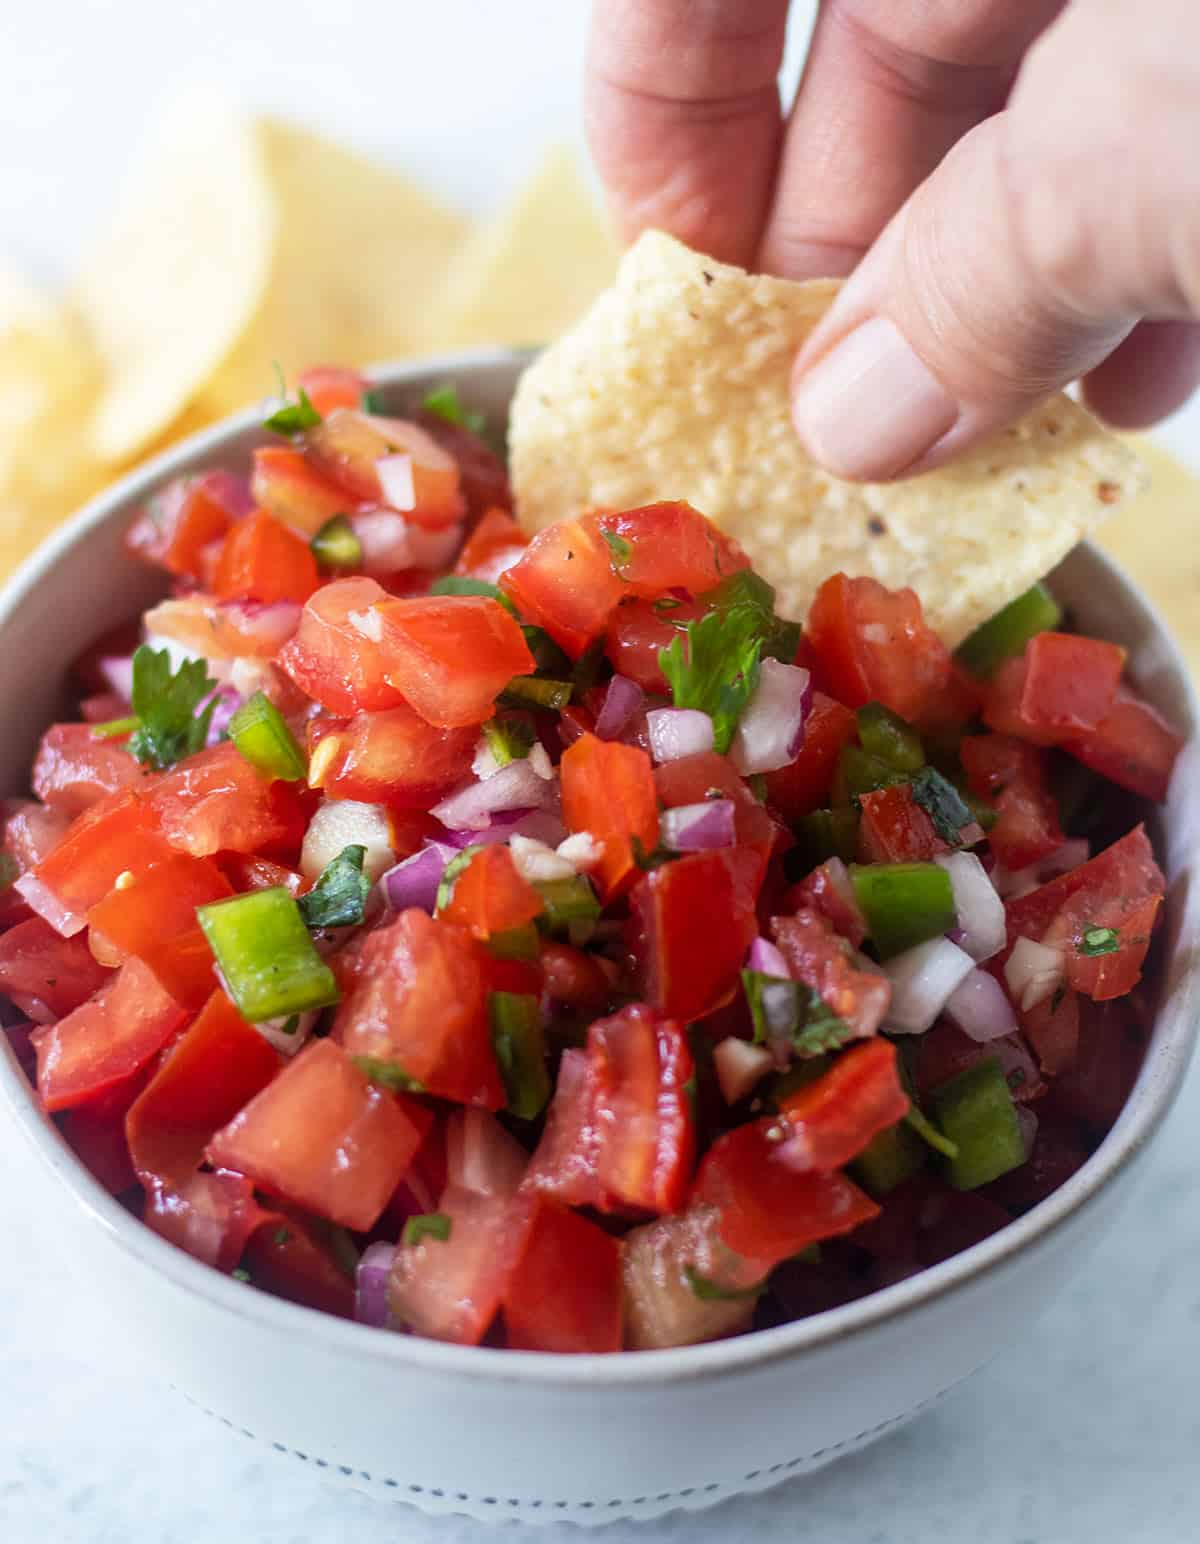 homemade pico de gallo in a white bowl with blue trim and a hand dipping some out with a tortilla chip.